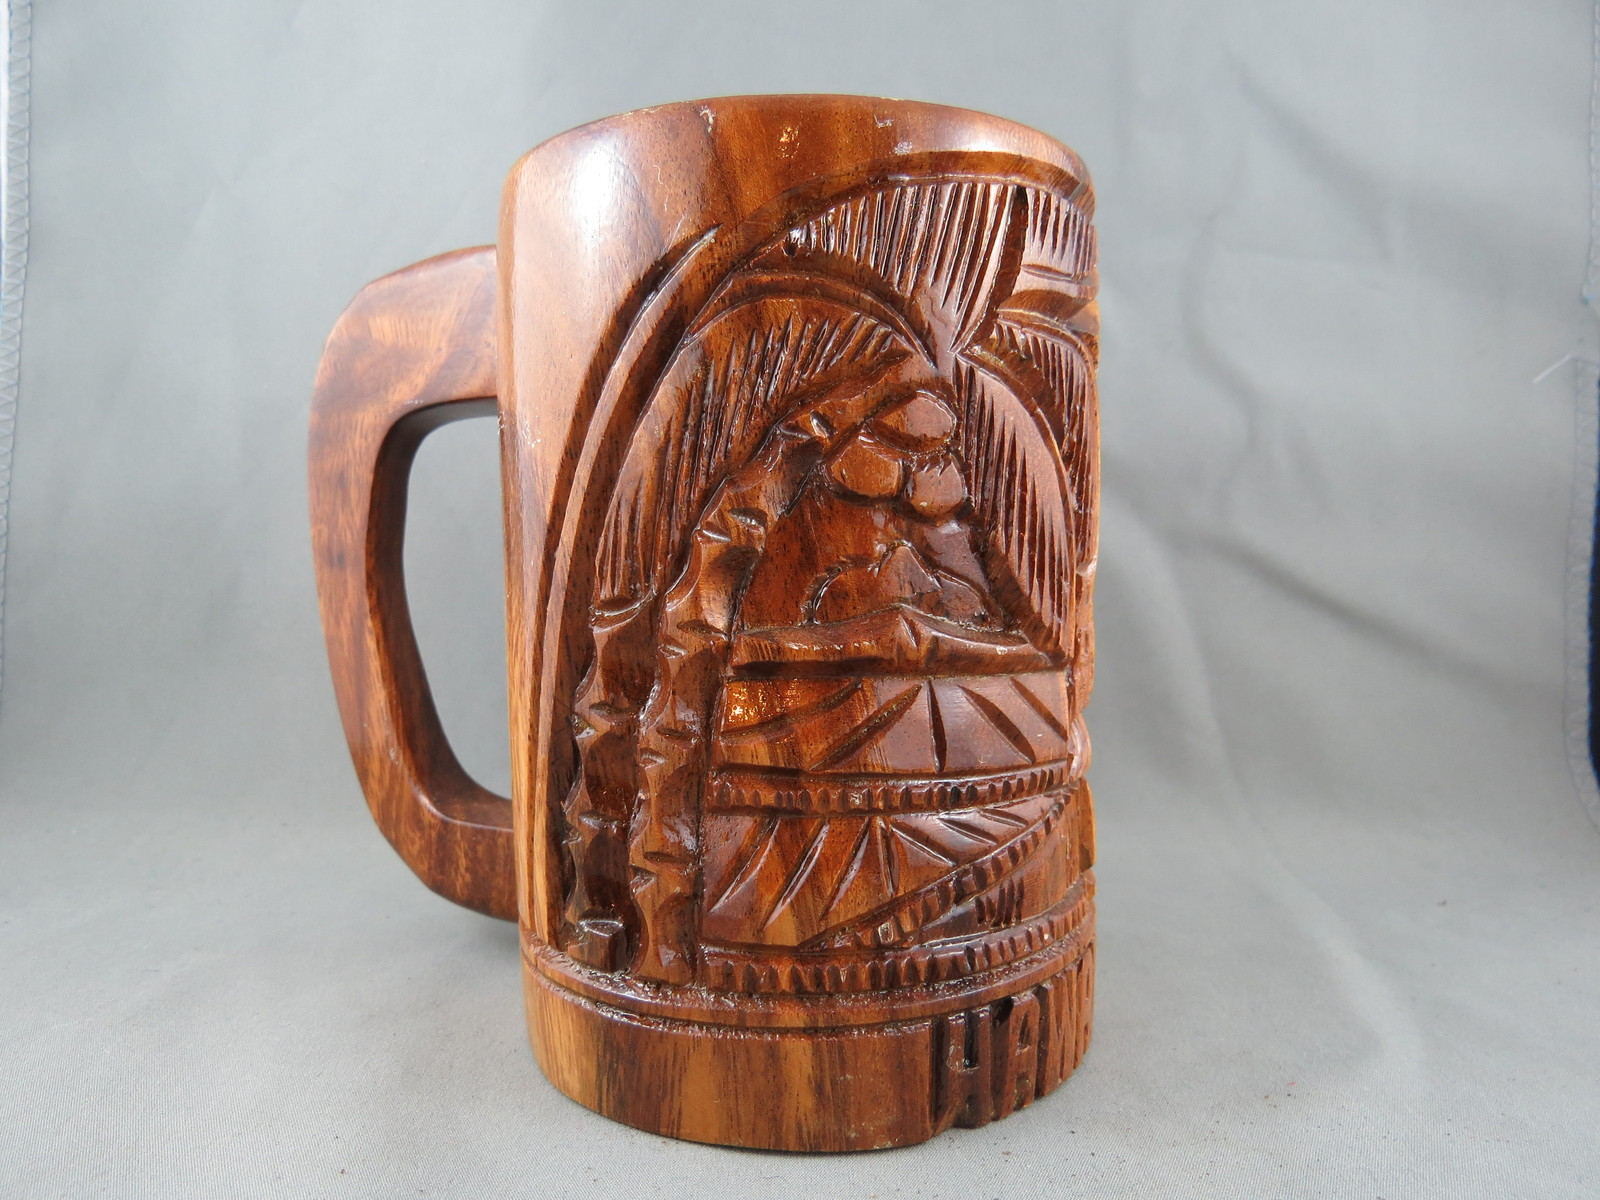 Primary image for Vintage Wooden Tiki Mug - Island Hut Theme - Made in the Phillipnes